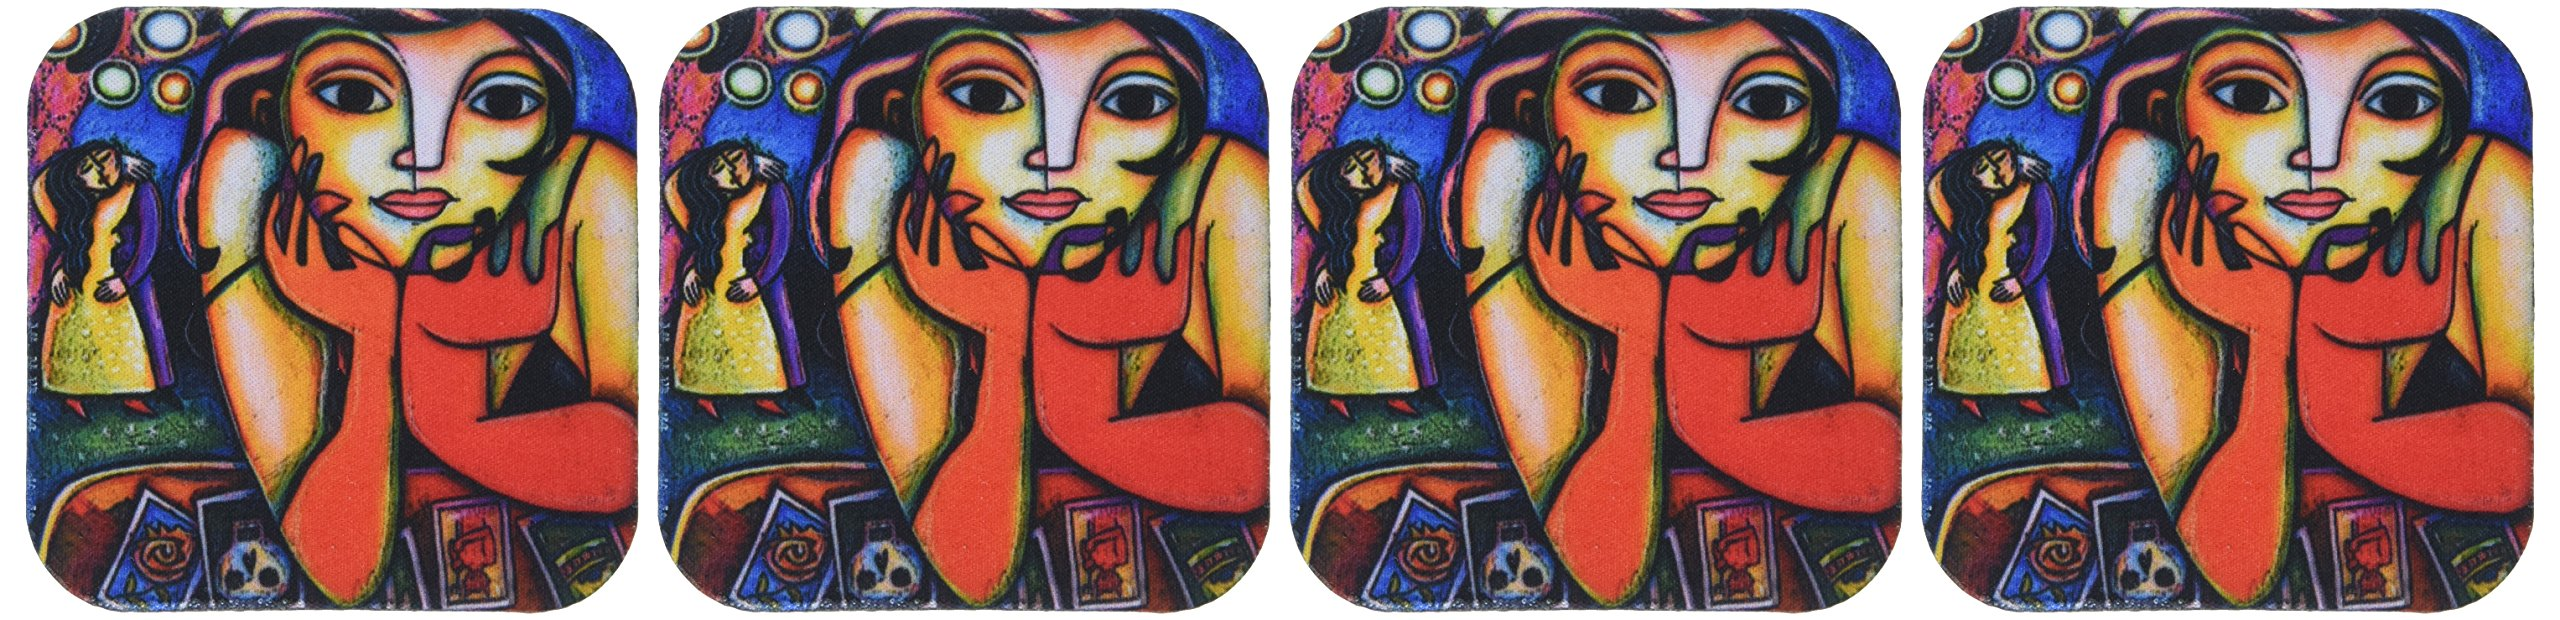 3dRose cst_21203_1 Loteria Woman Colorful Romance Dance Lottery Party Soft Coasters, Set of 4